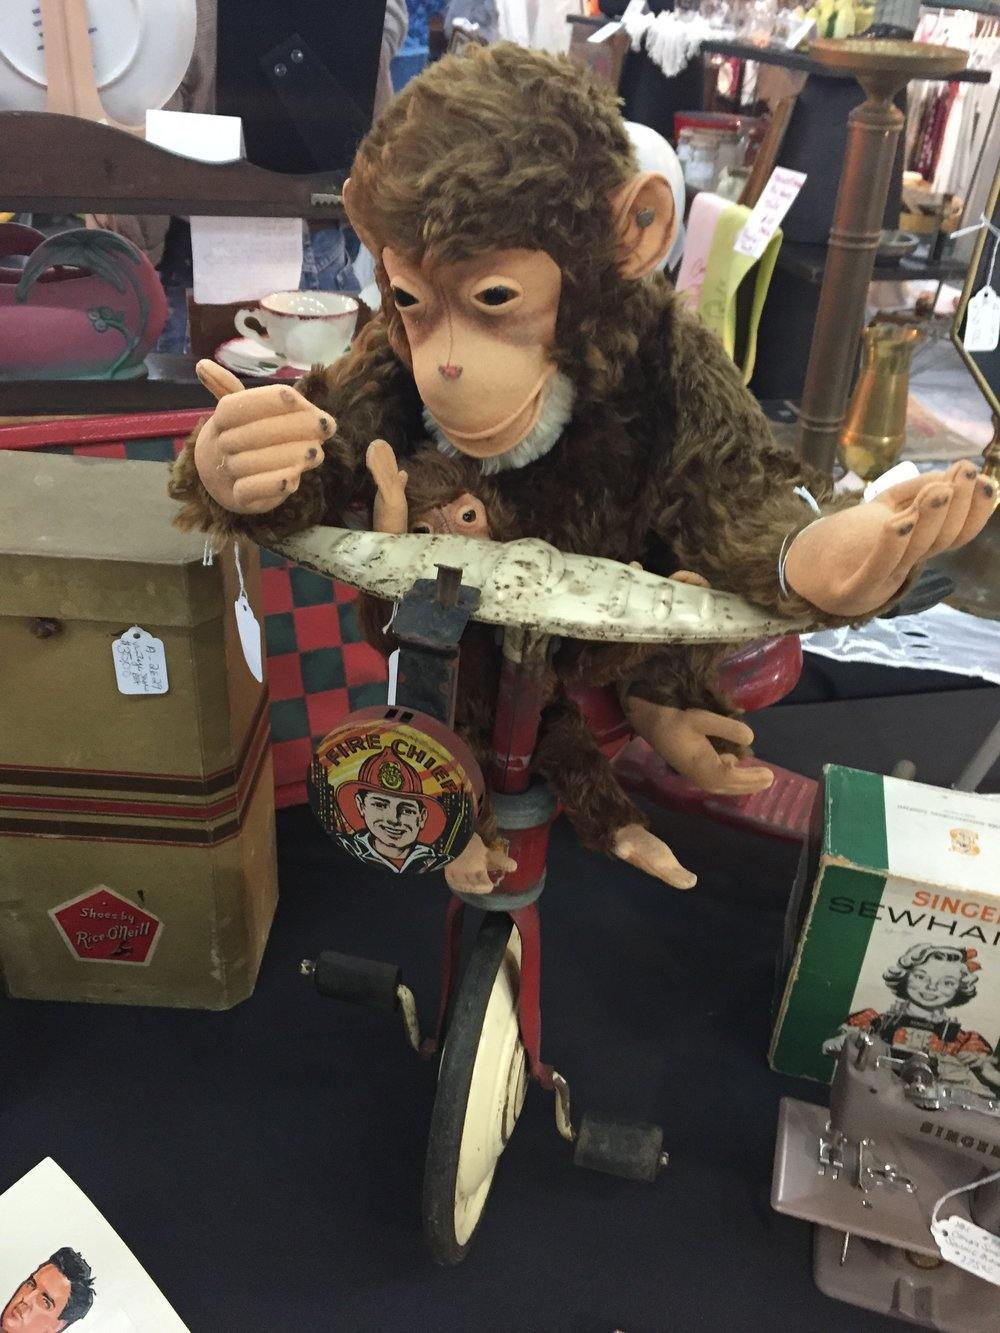 fire chief monkey on a tricycle.  'nuff said.